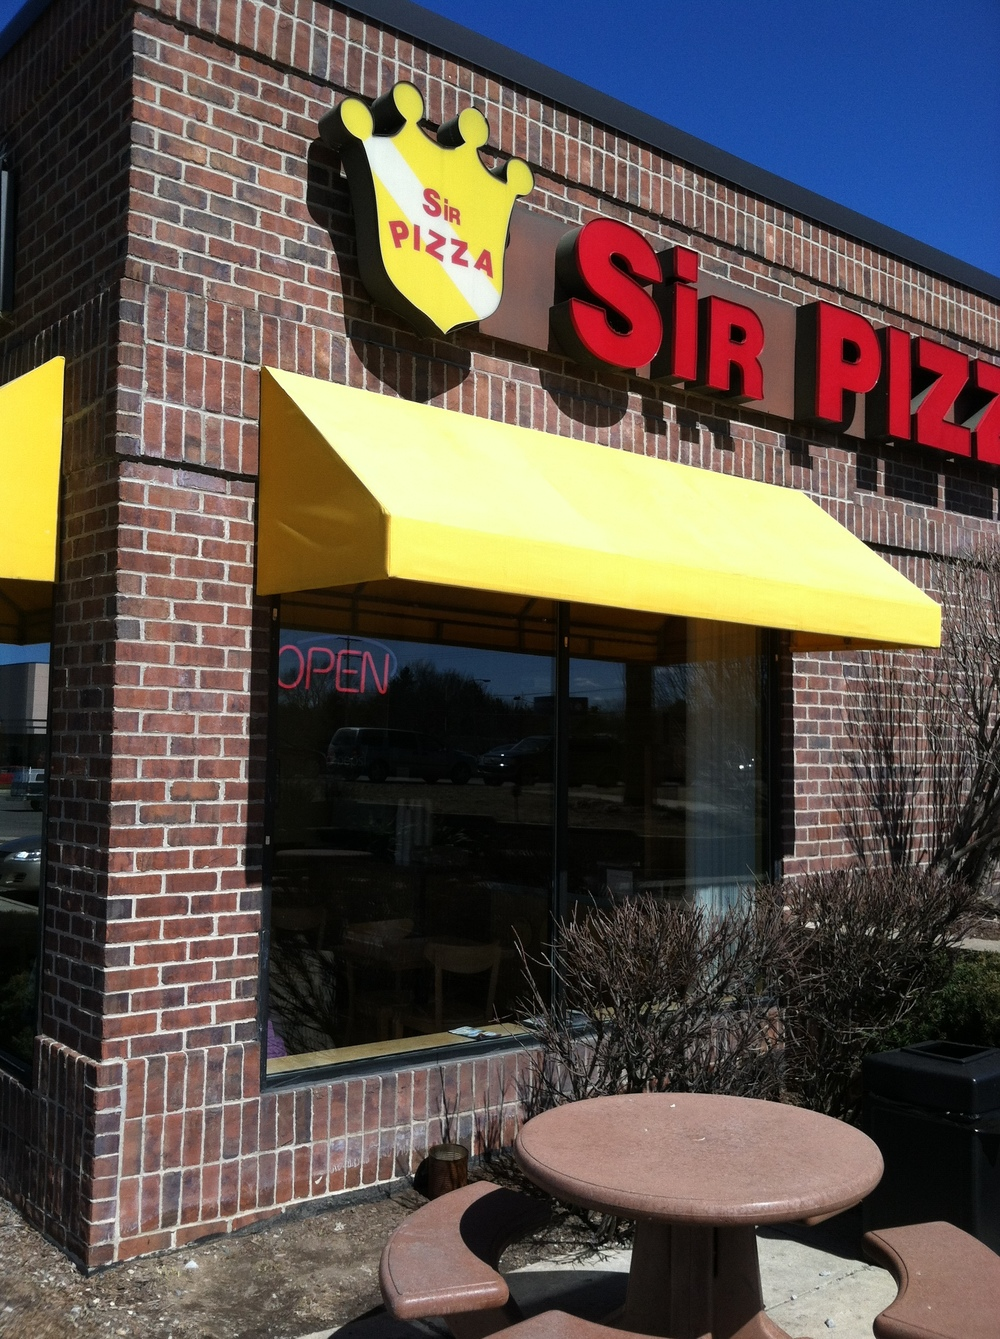 Sir Pizza